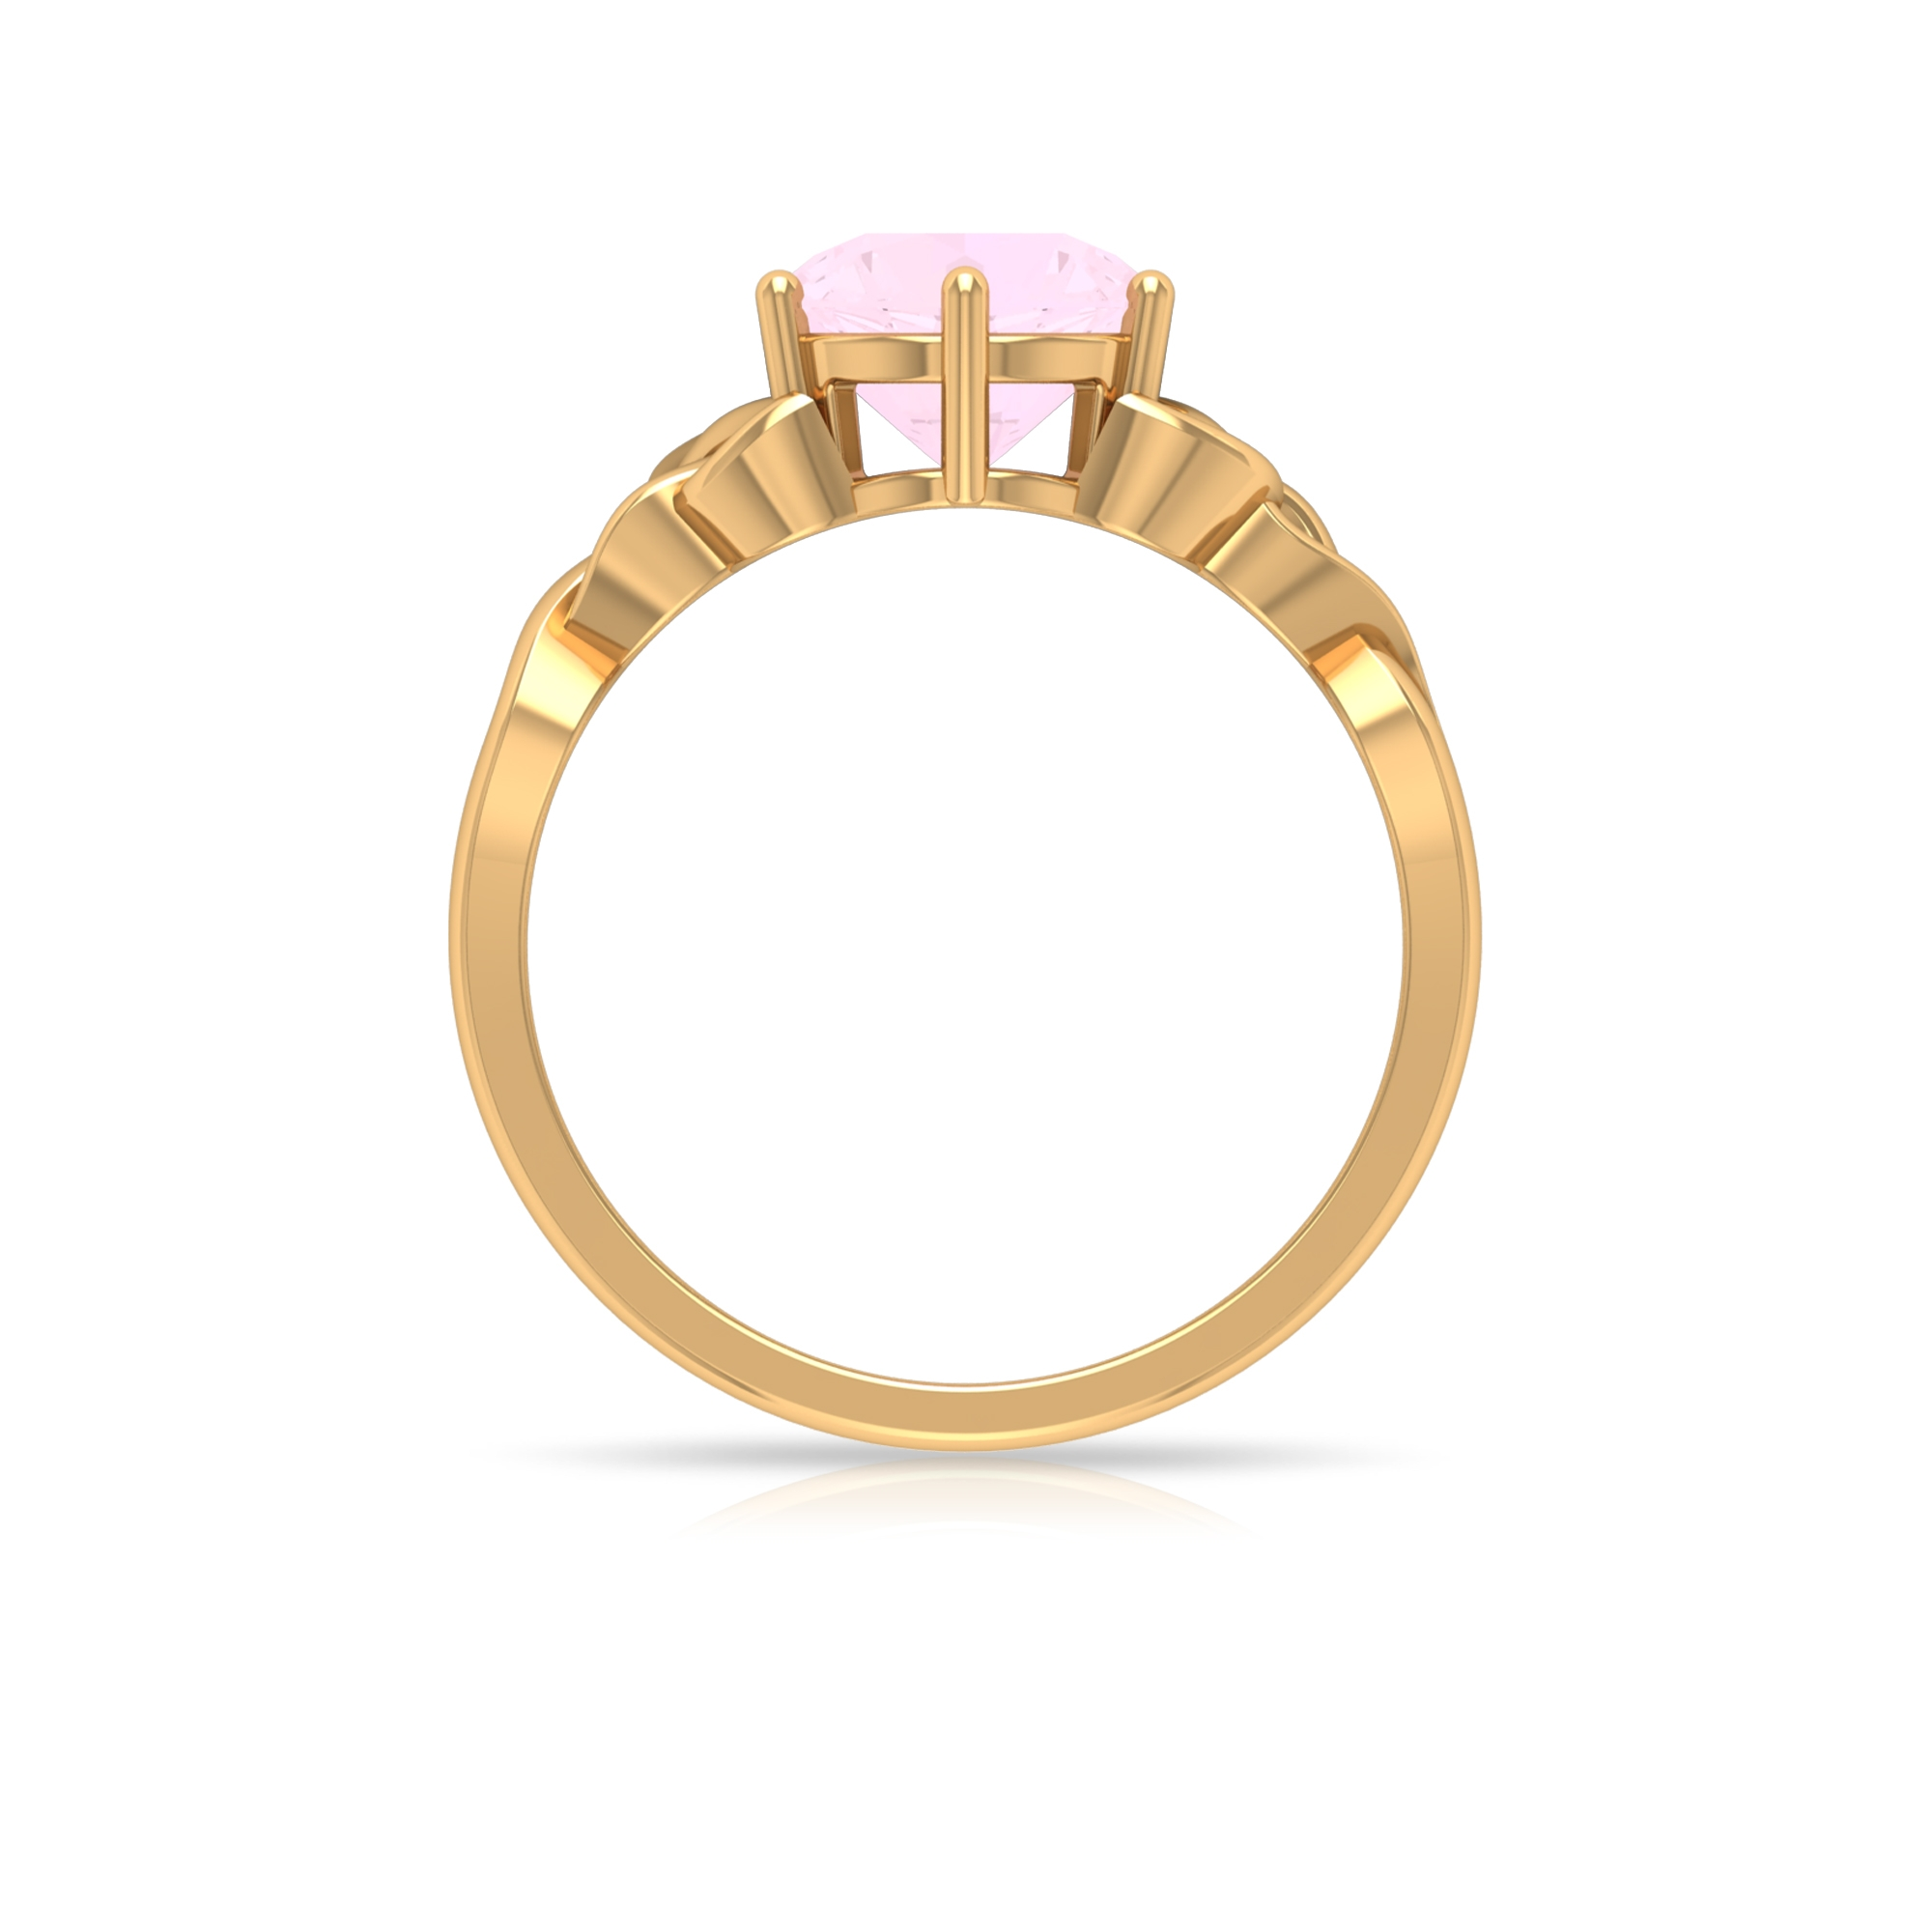 1/4 CT Solitaire Rose Quartz Celtic Engagement Ring in 6 Prong Setting